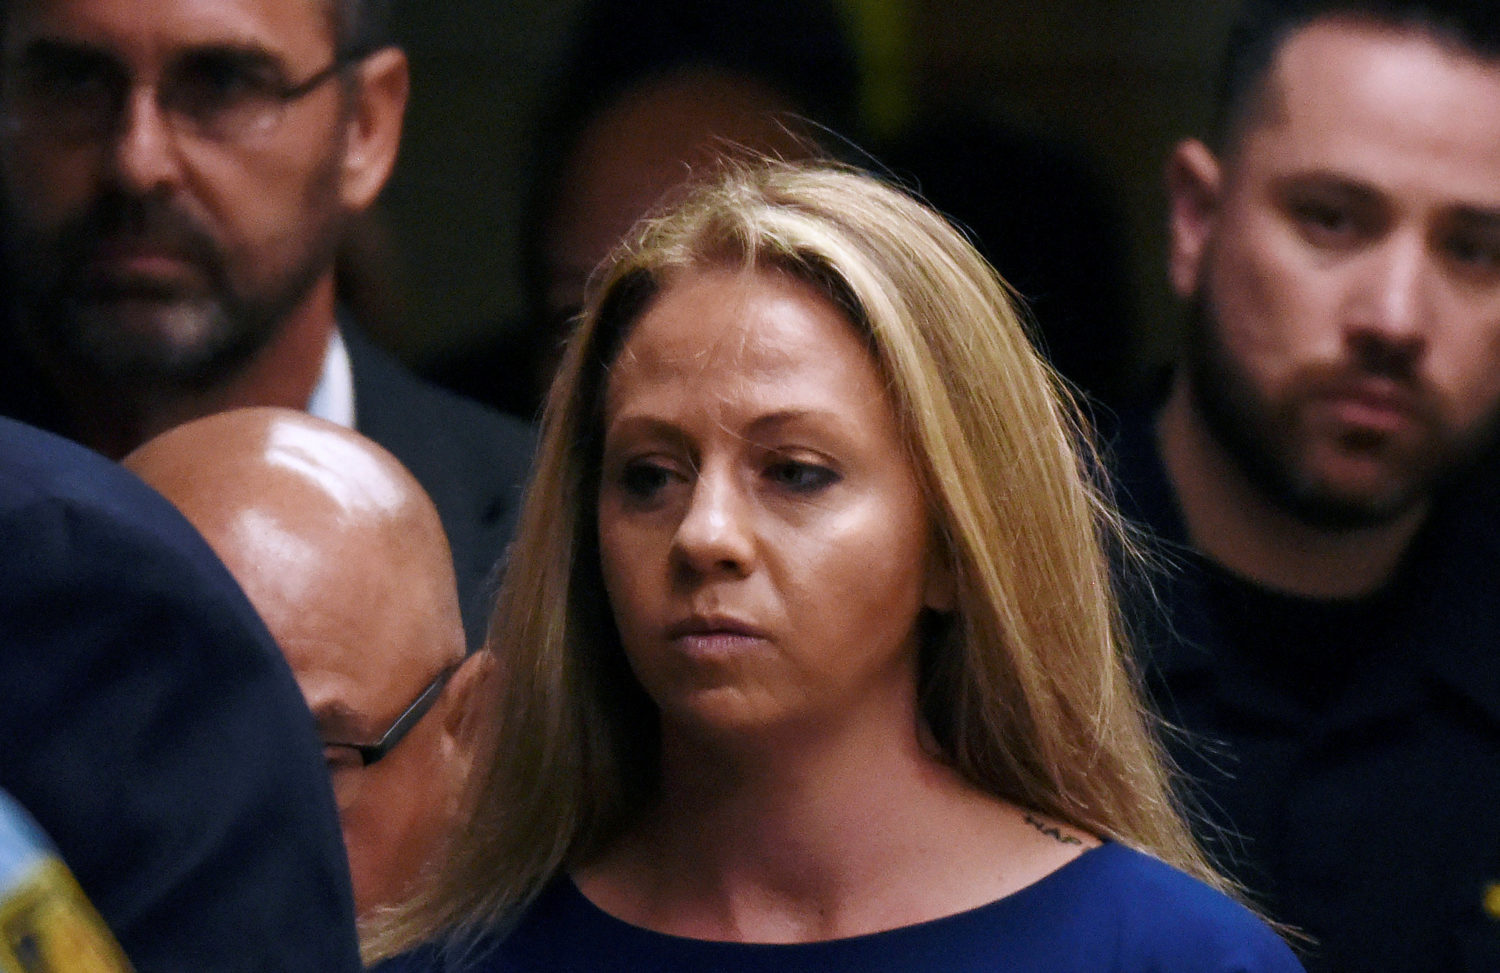 FILE PHOTO: Amber Guyger, who is charged in the killing of Botham Jean in his own home, arrives on the first day of the trial in Dallas, Texas, U.S., September 23, 2019. REUTERS/Jeremy Lock/File Photo